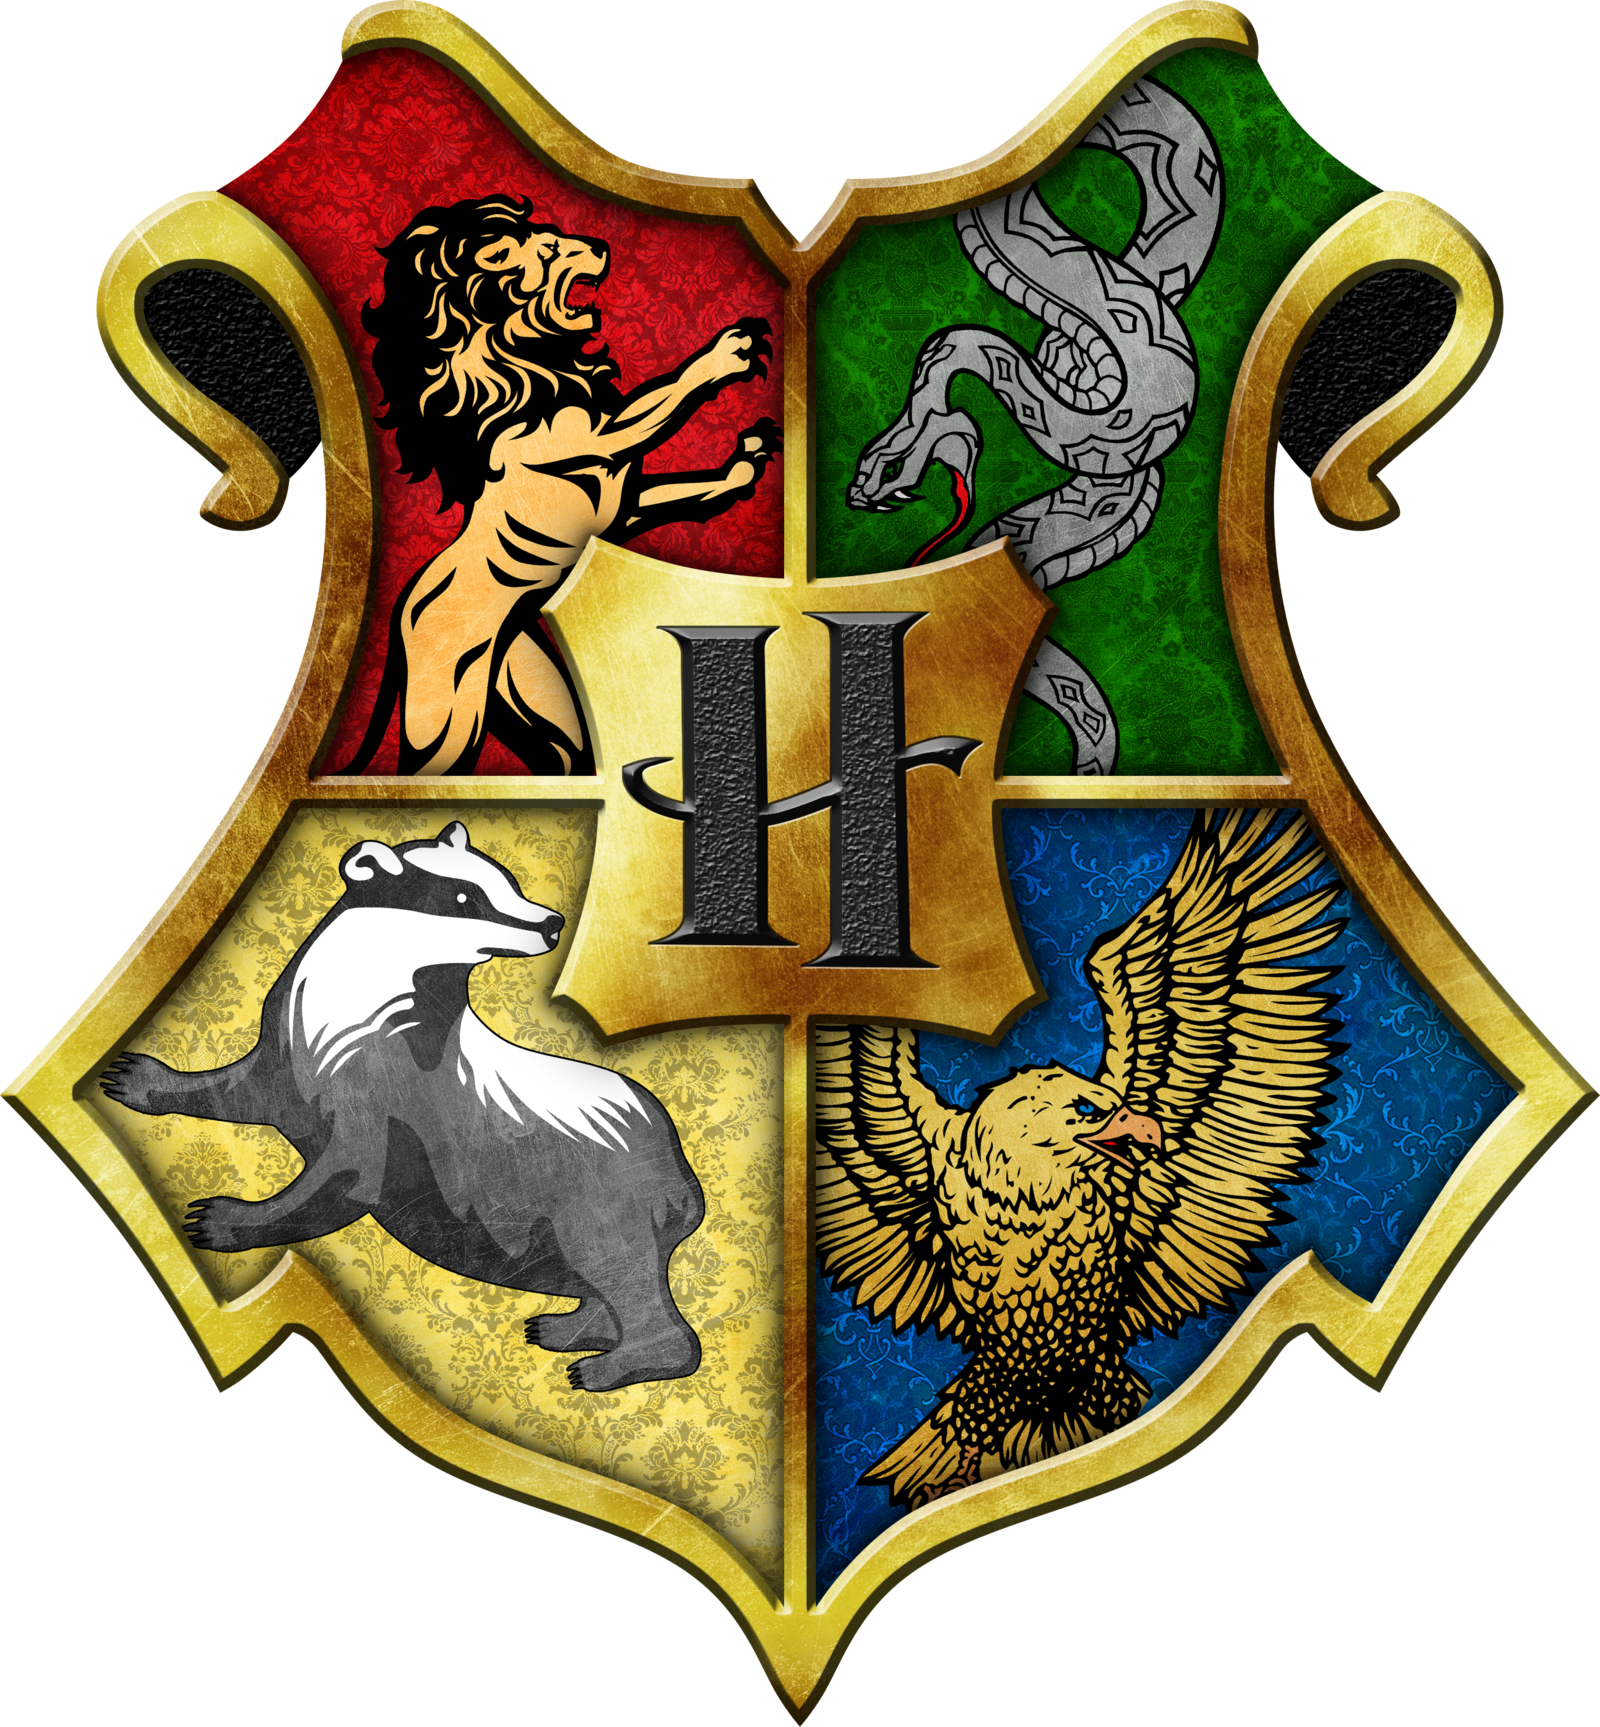 Official hogwarts crest png. The enneagram goes to